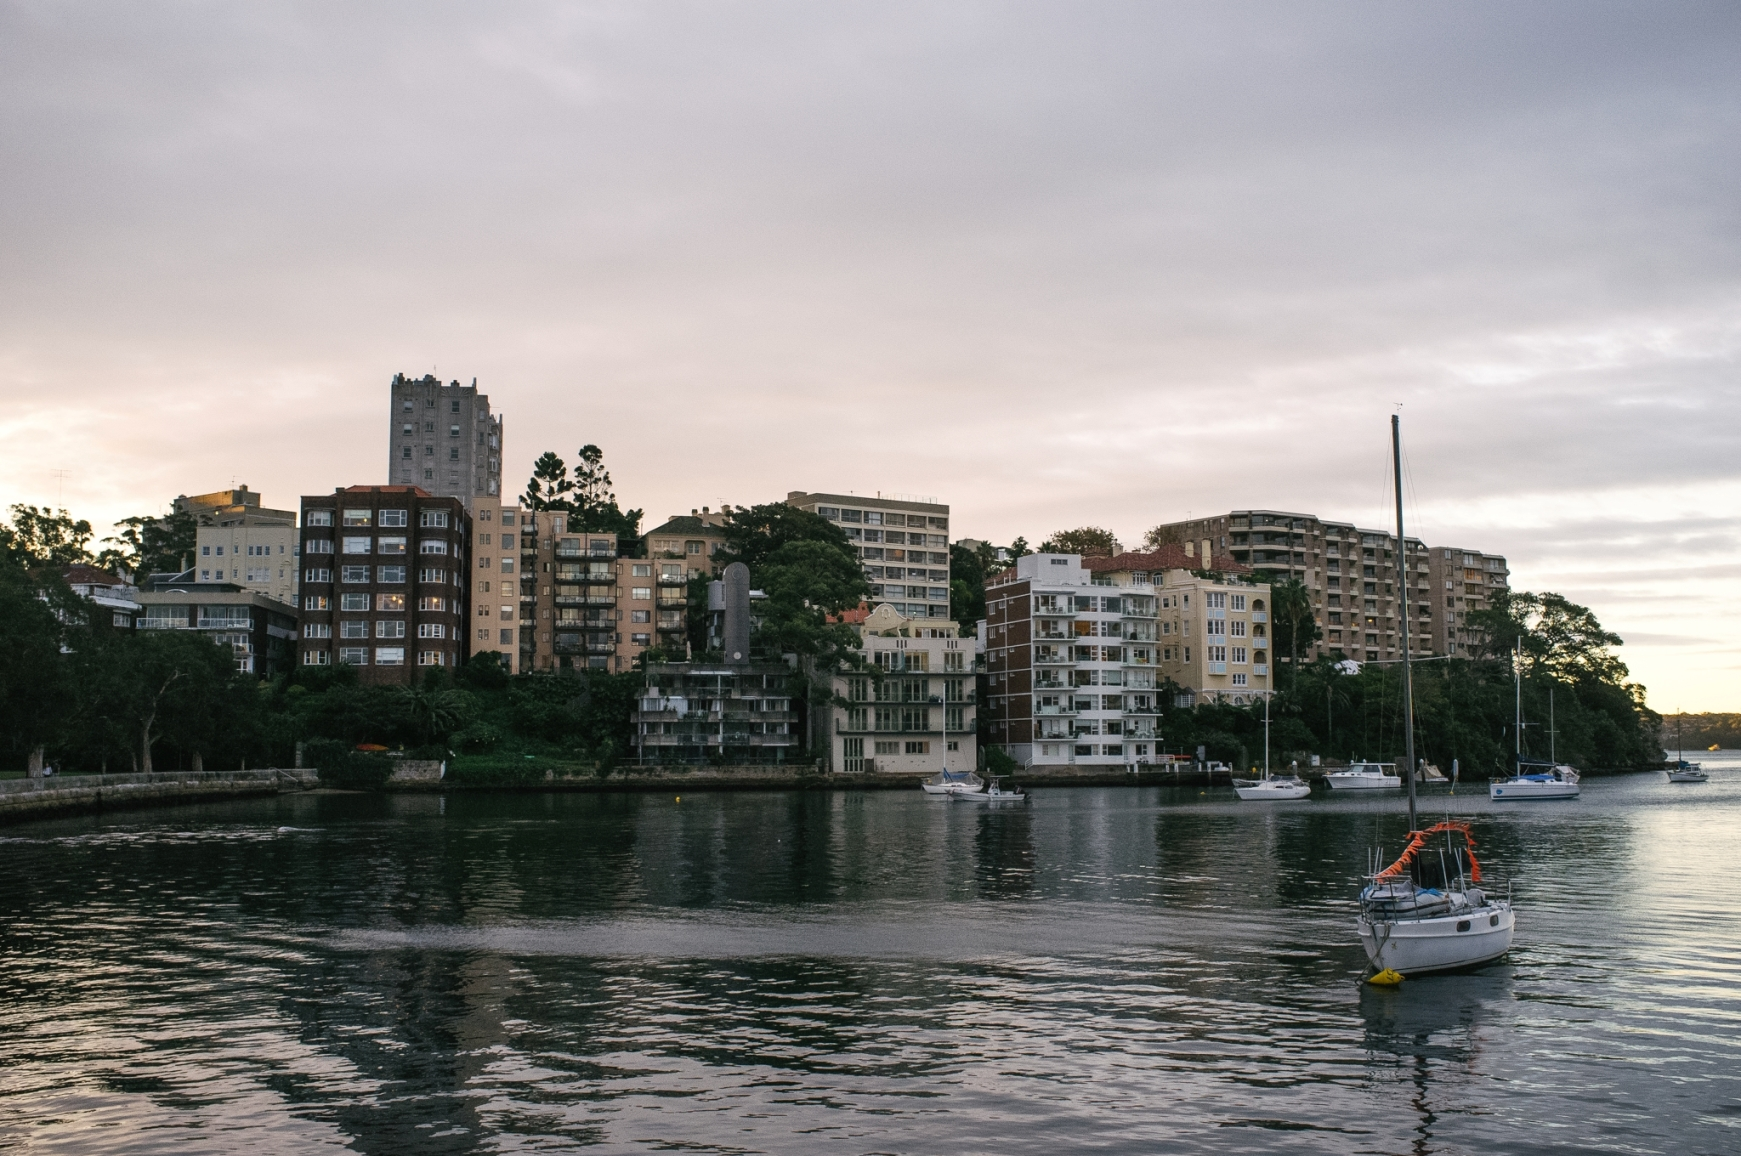 Potts Point's strong feature is its accessibility.